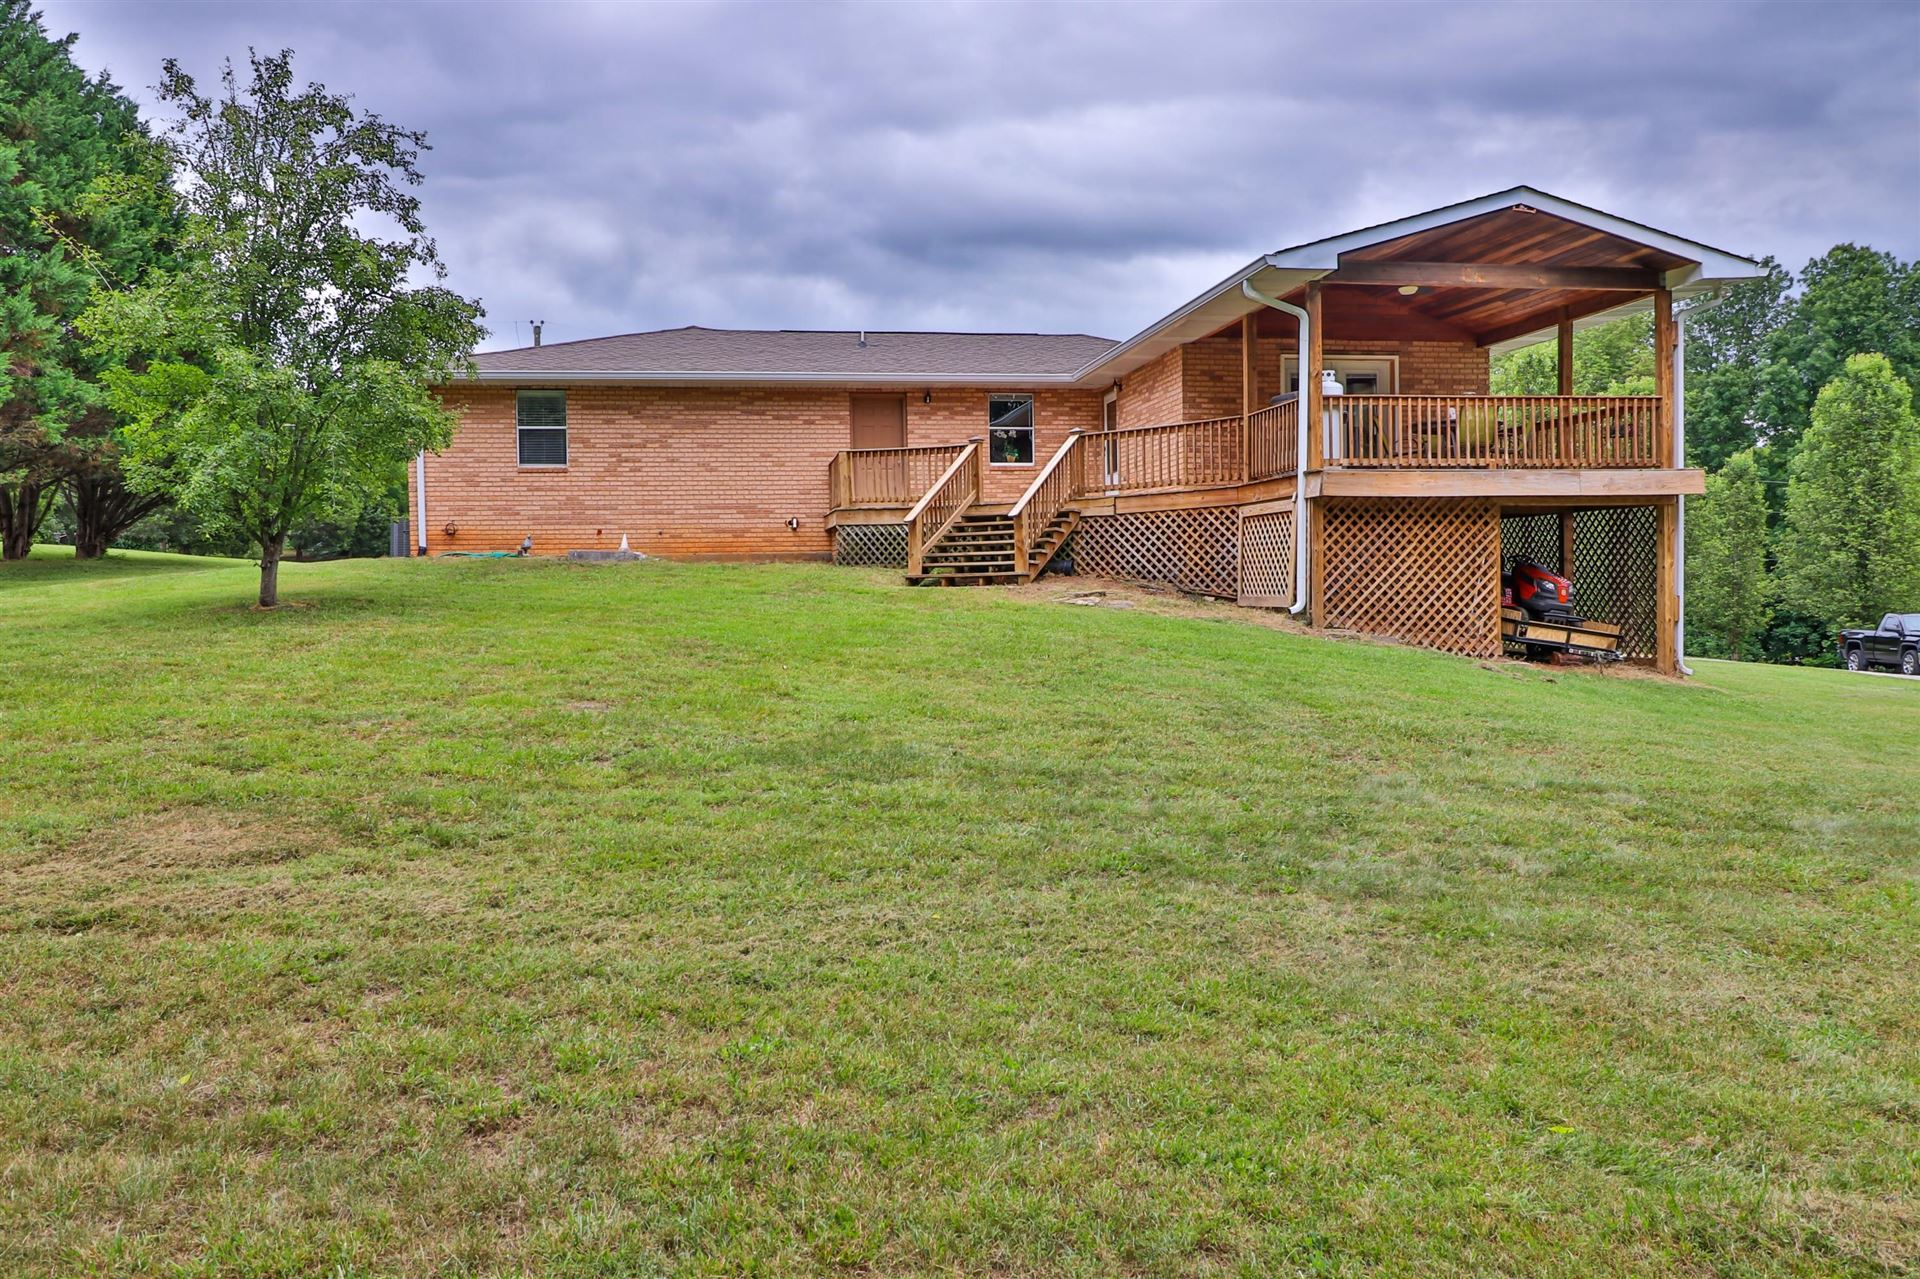 Photo of 1125 S Fork Drive, Sevierville, TN 37862 (MLS # 1120600)